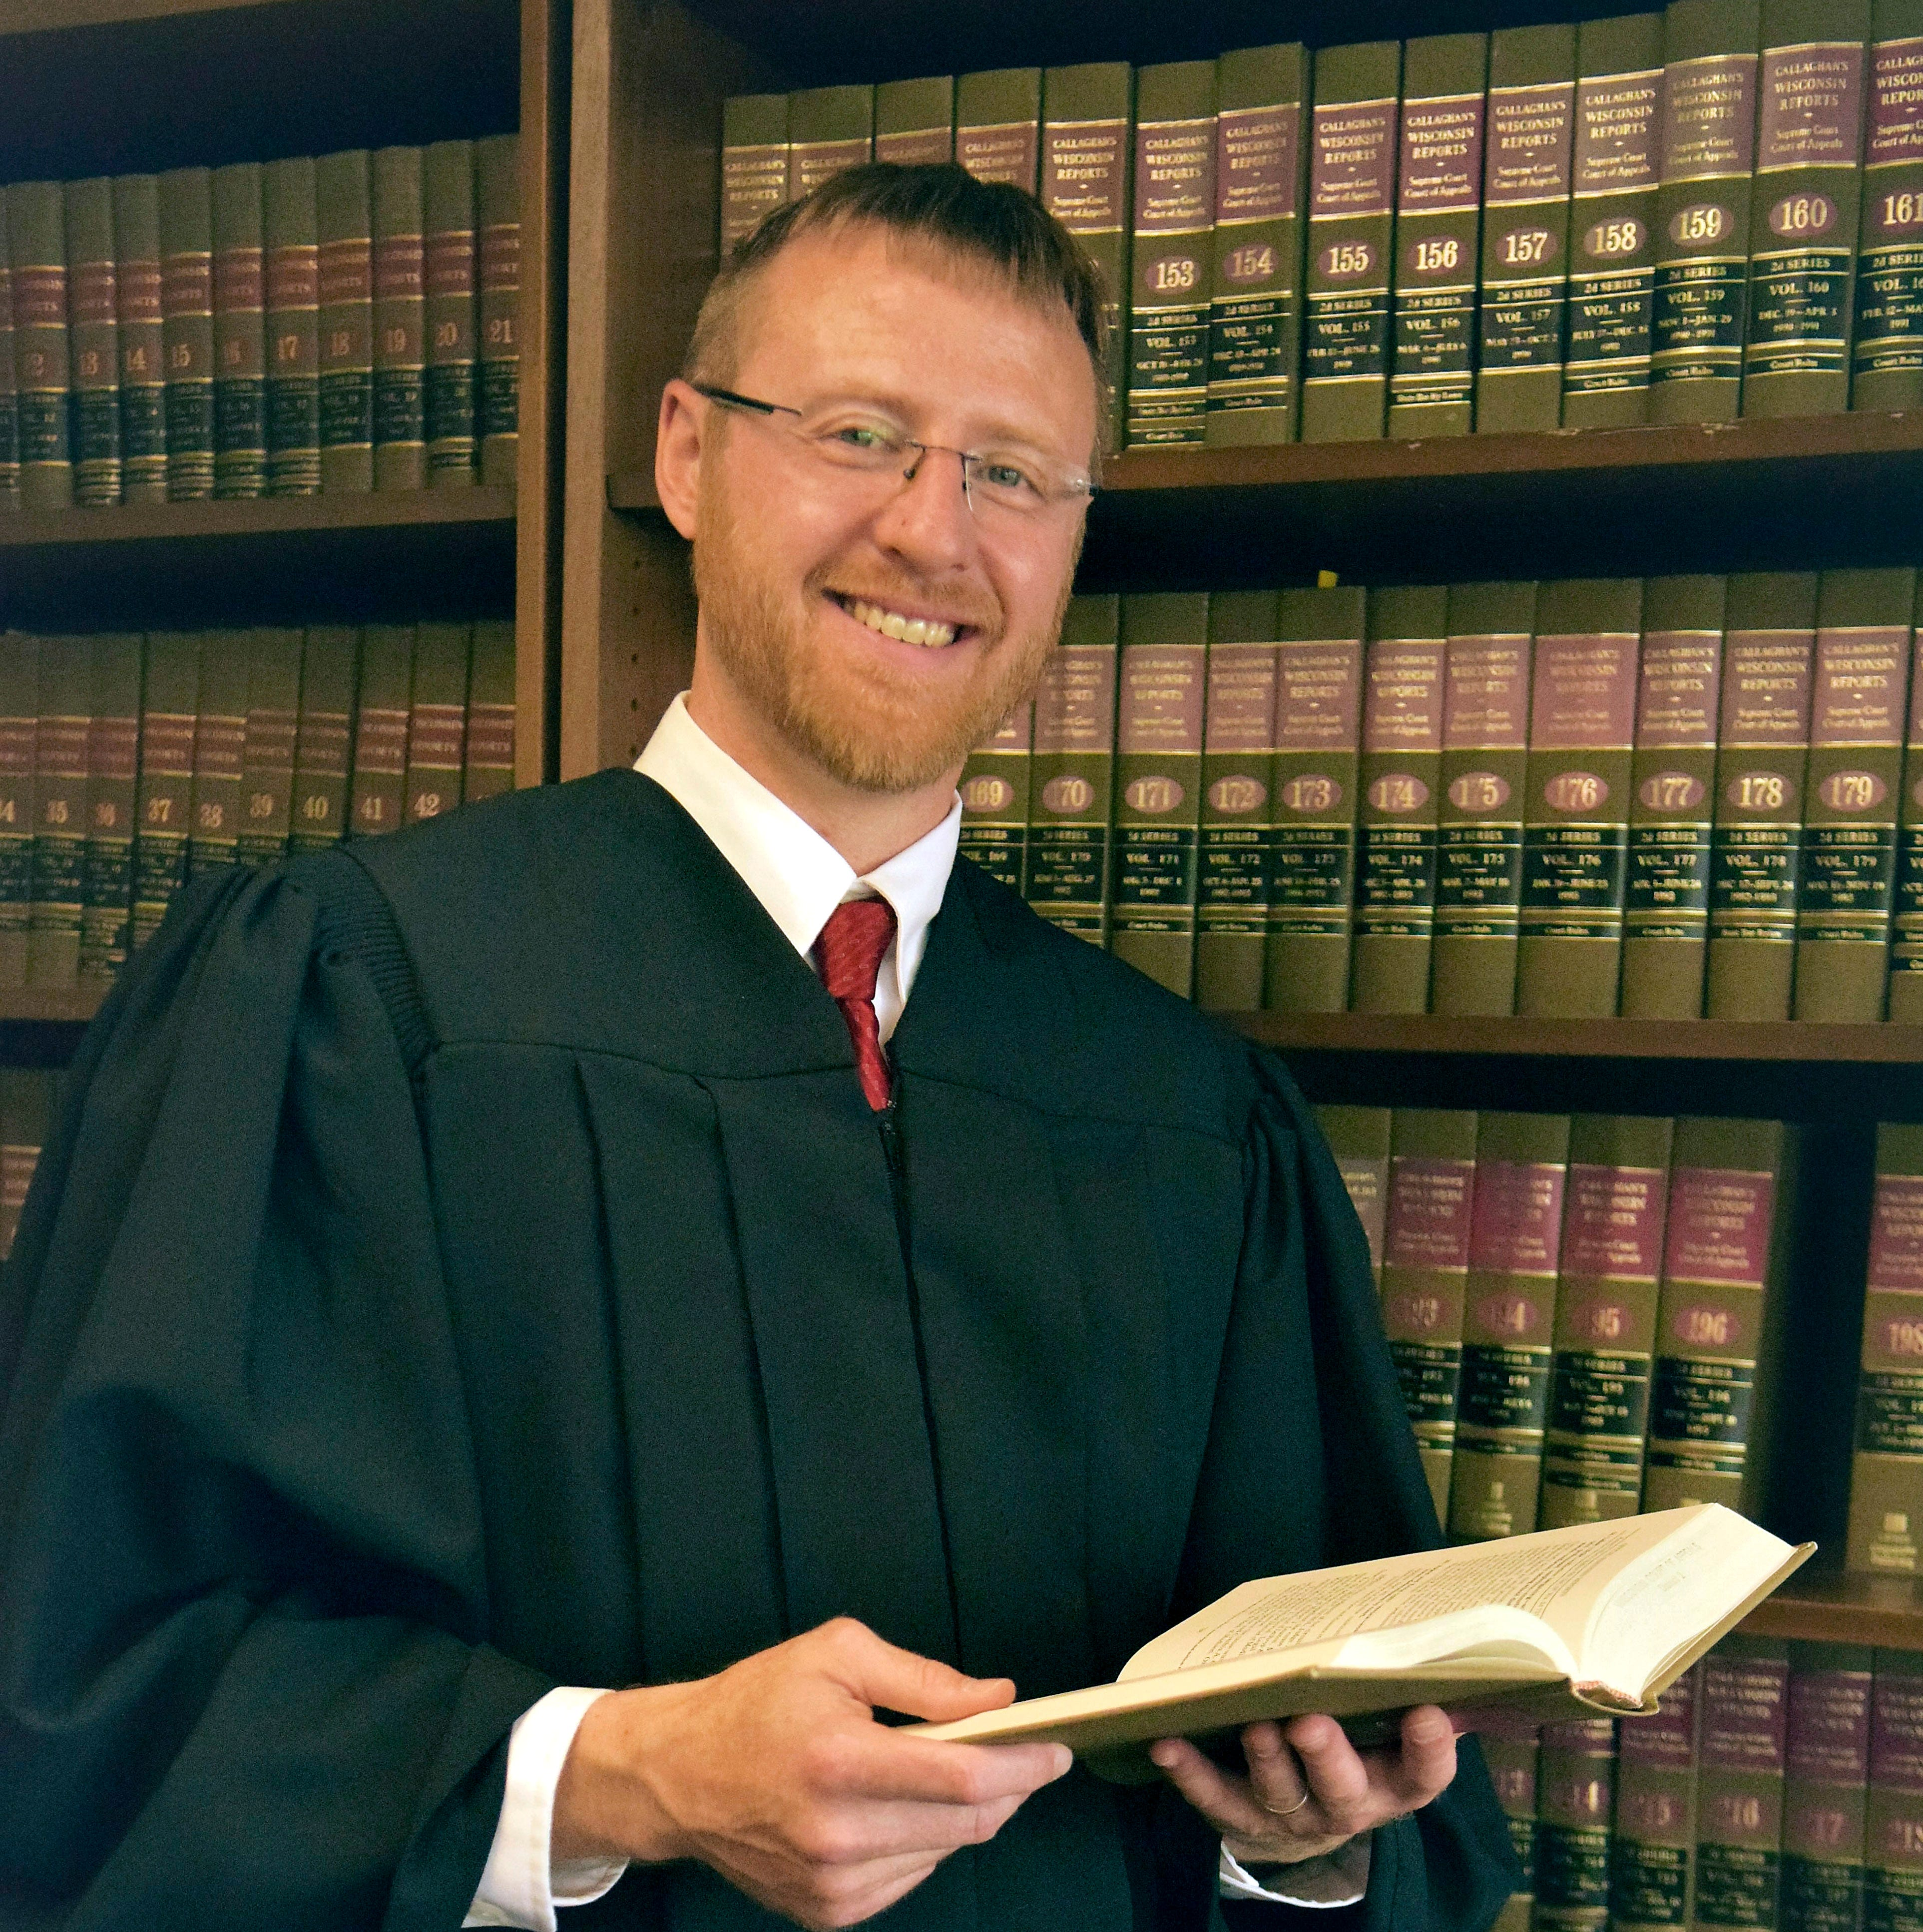 Opinion: Wisconsin Realtors had every right to withdraw support for Judge Brian Hagedorn